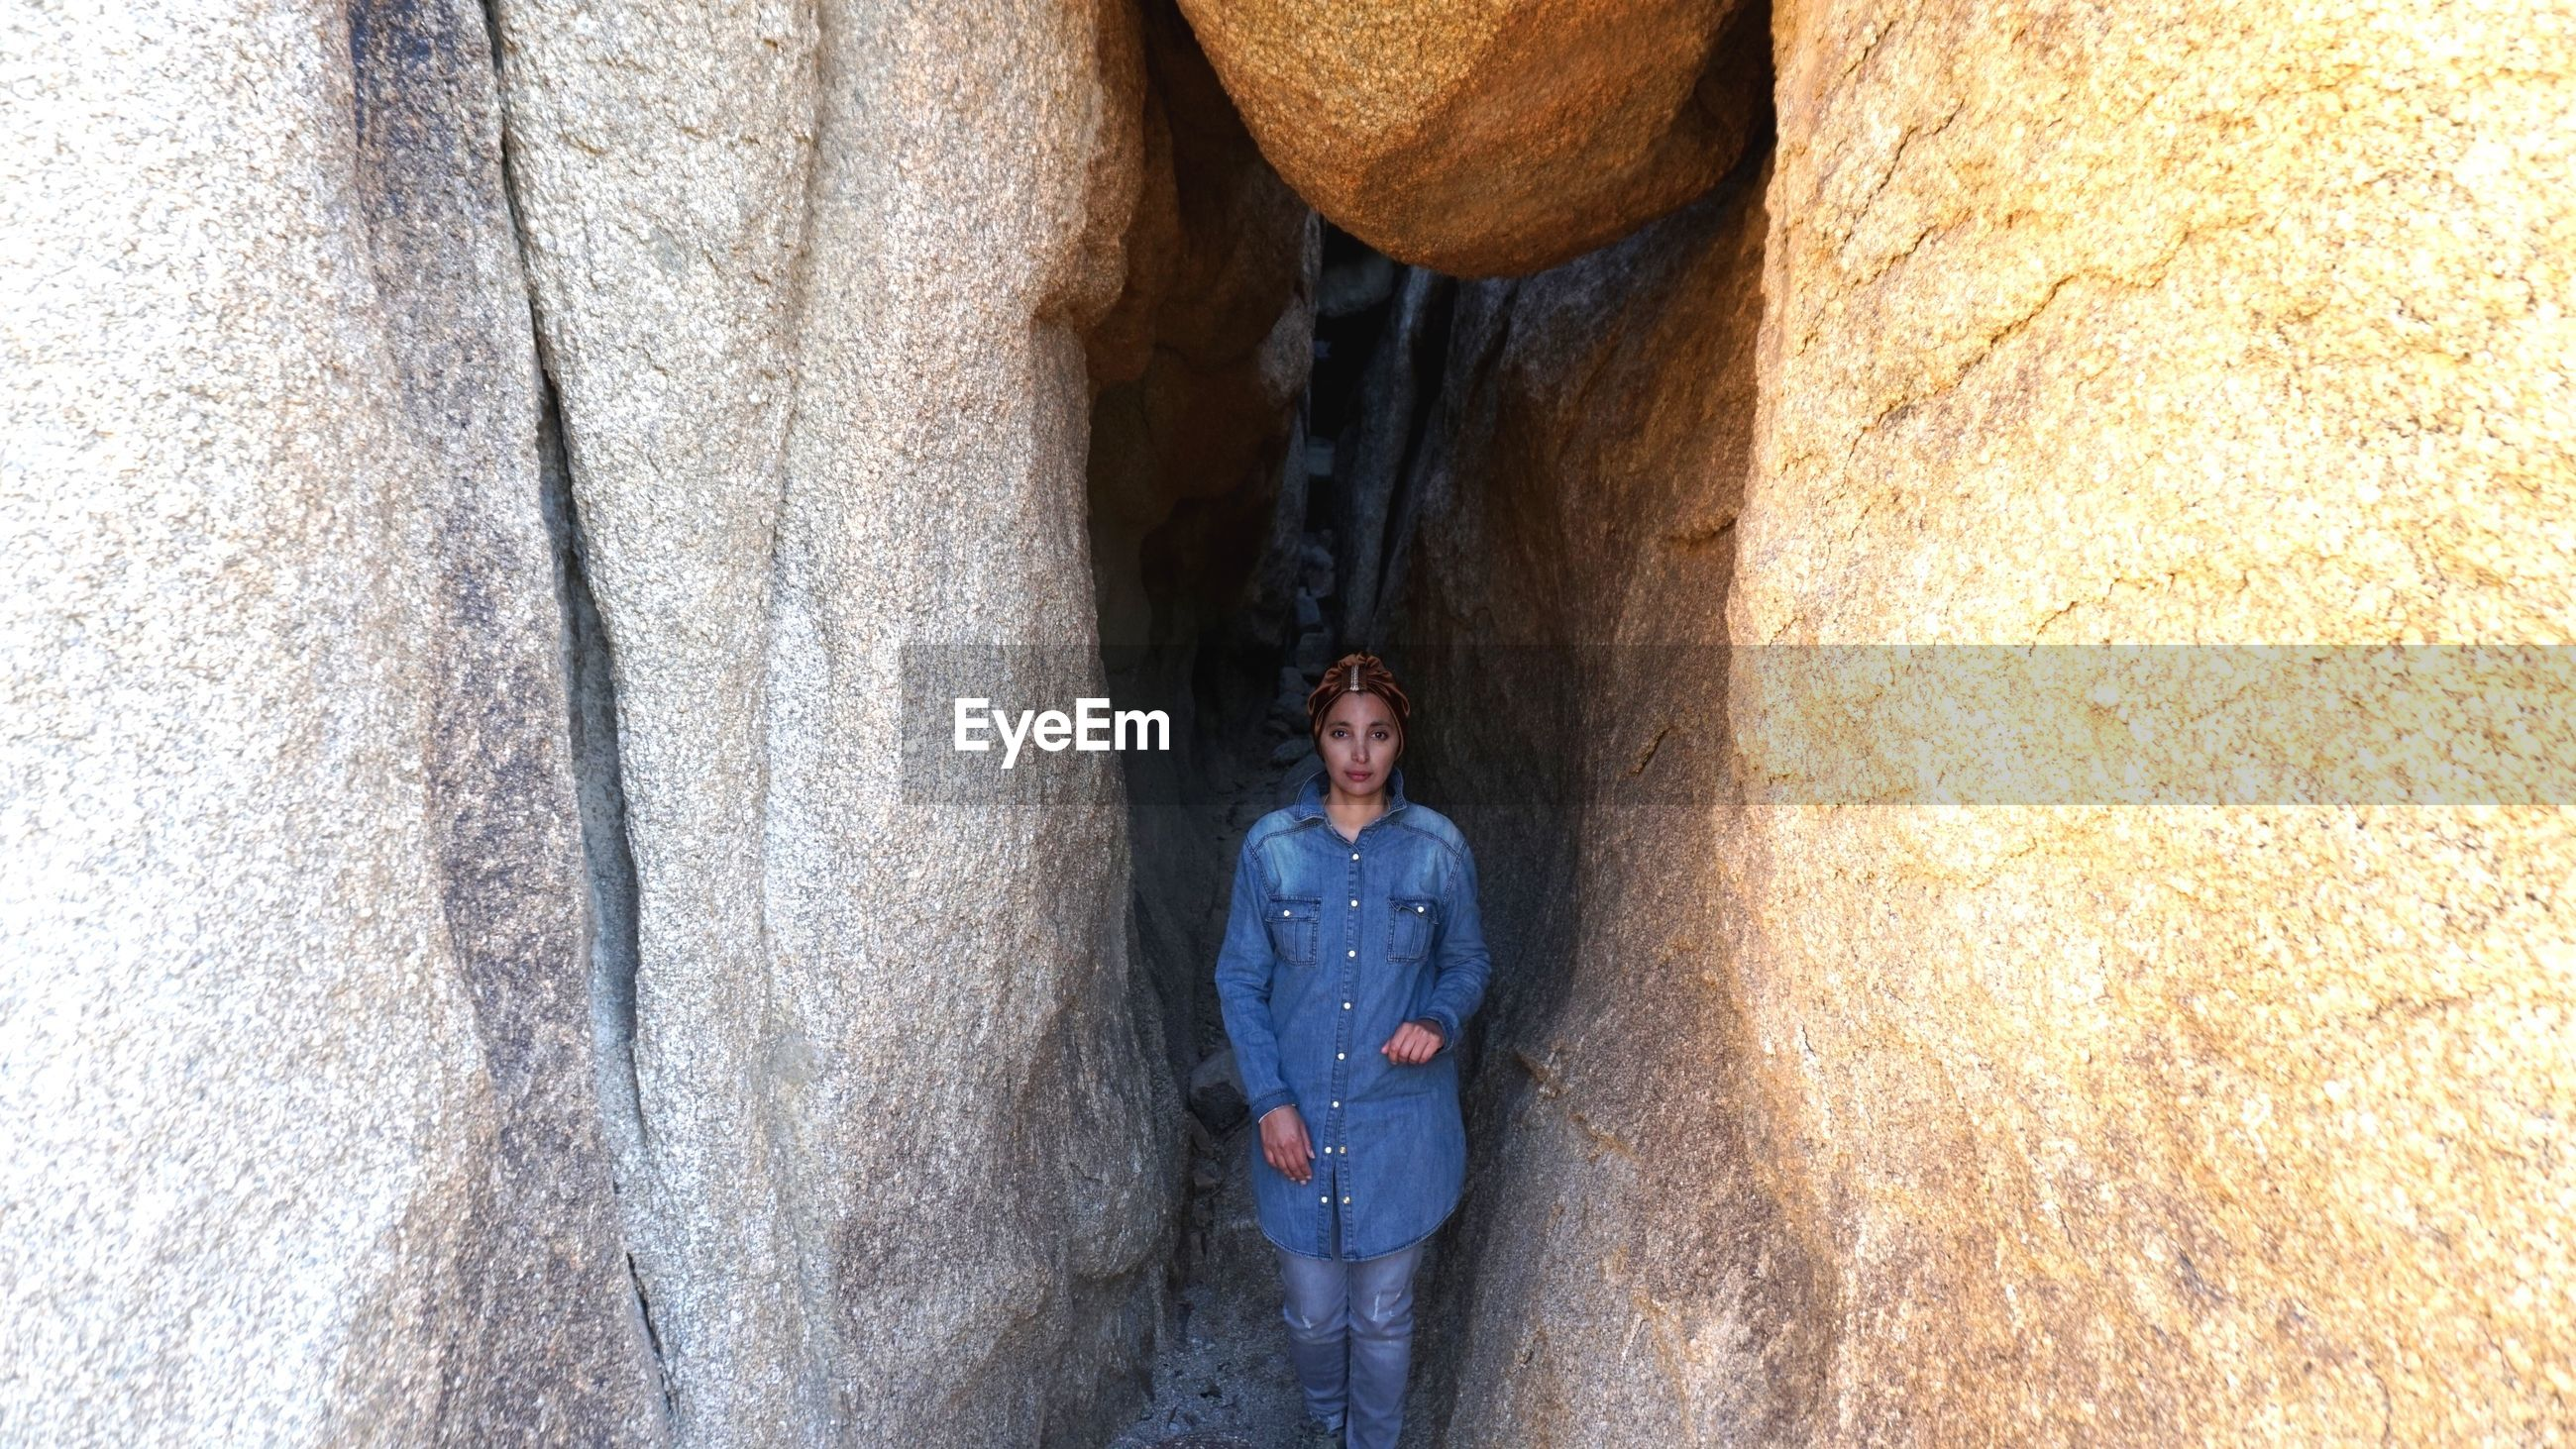 Portrait of mid adult woman standing by rock formations